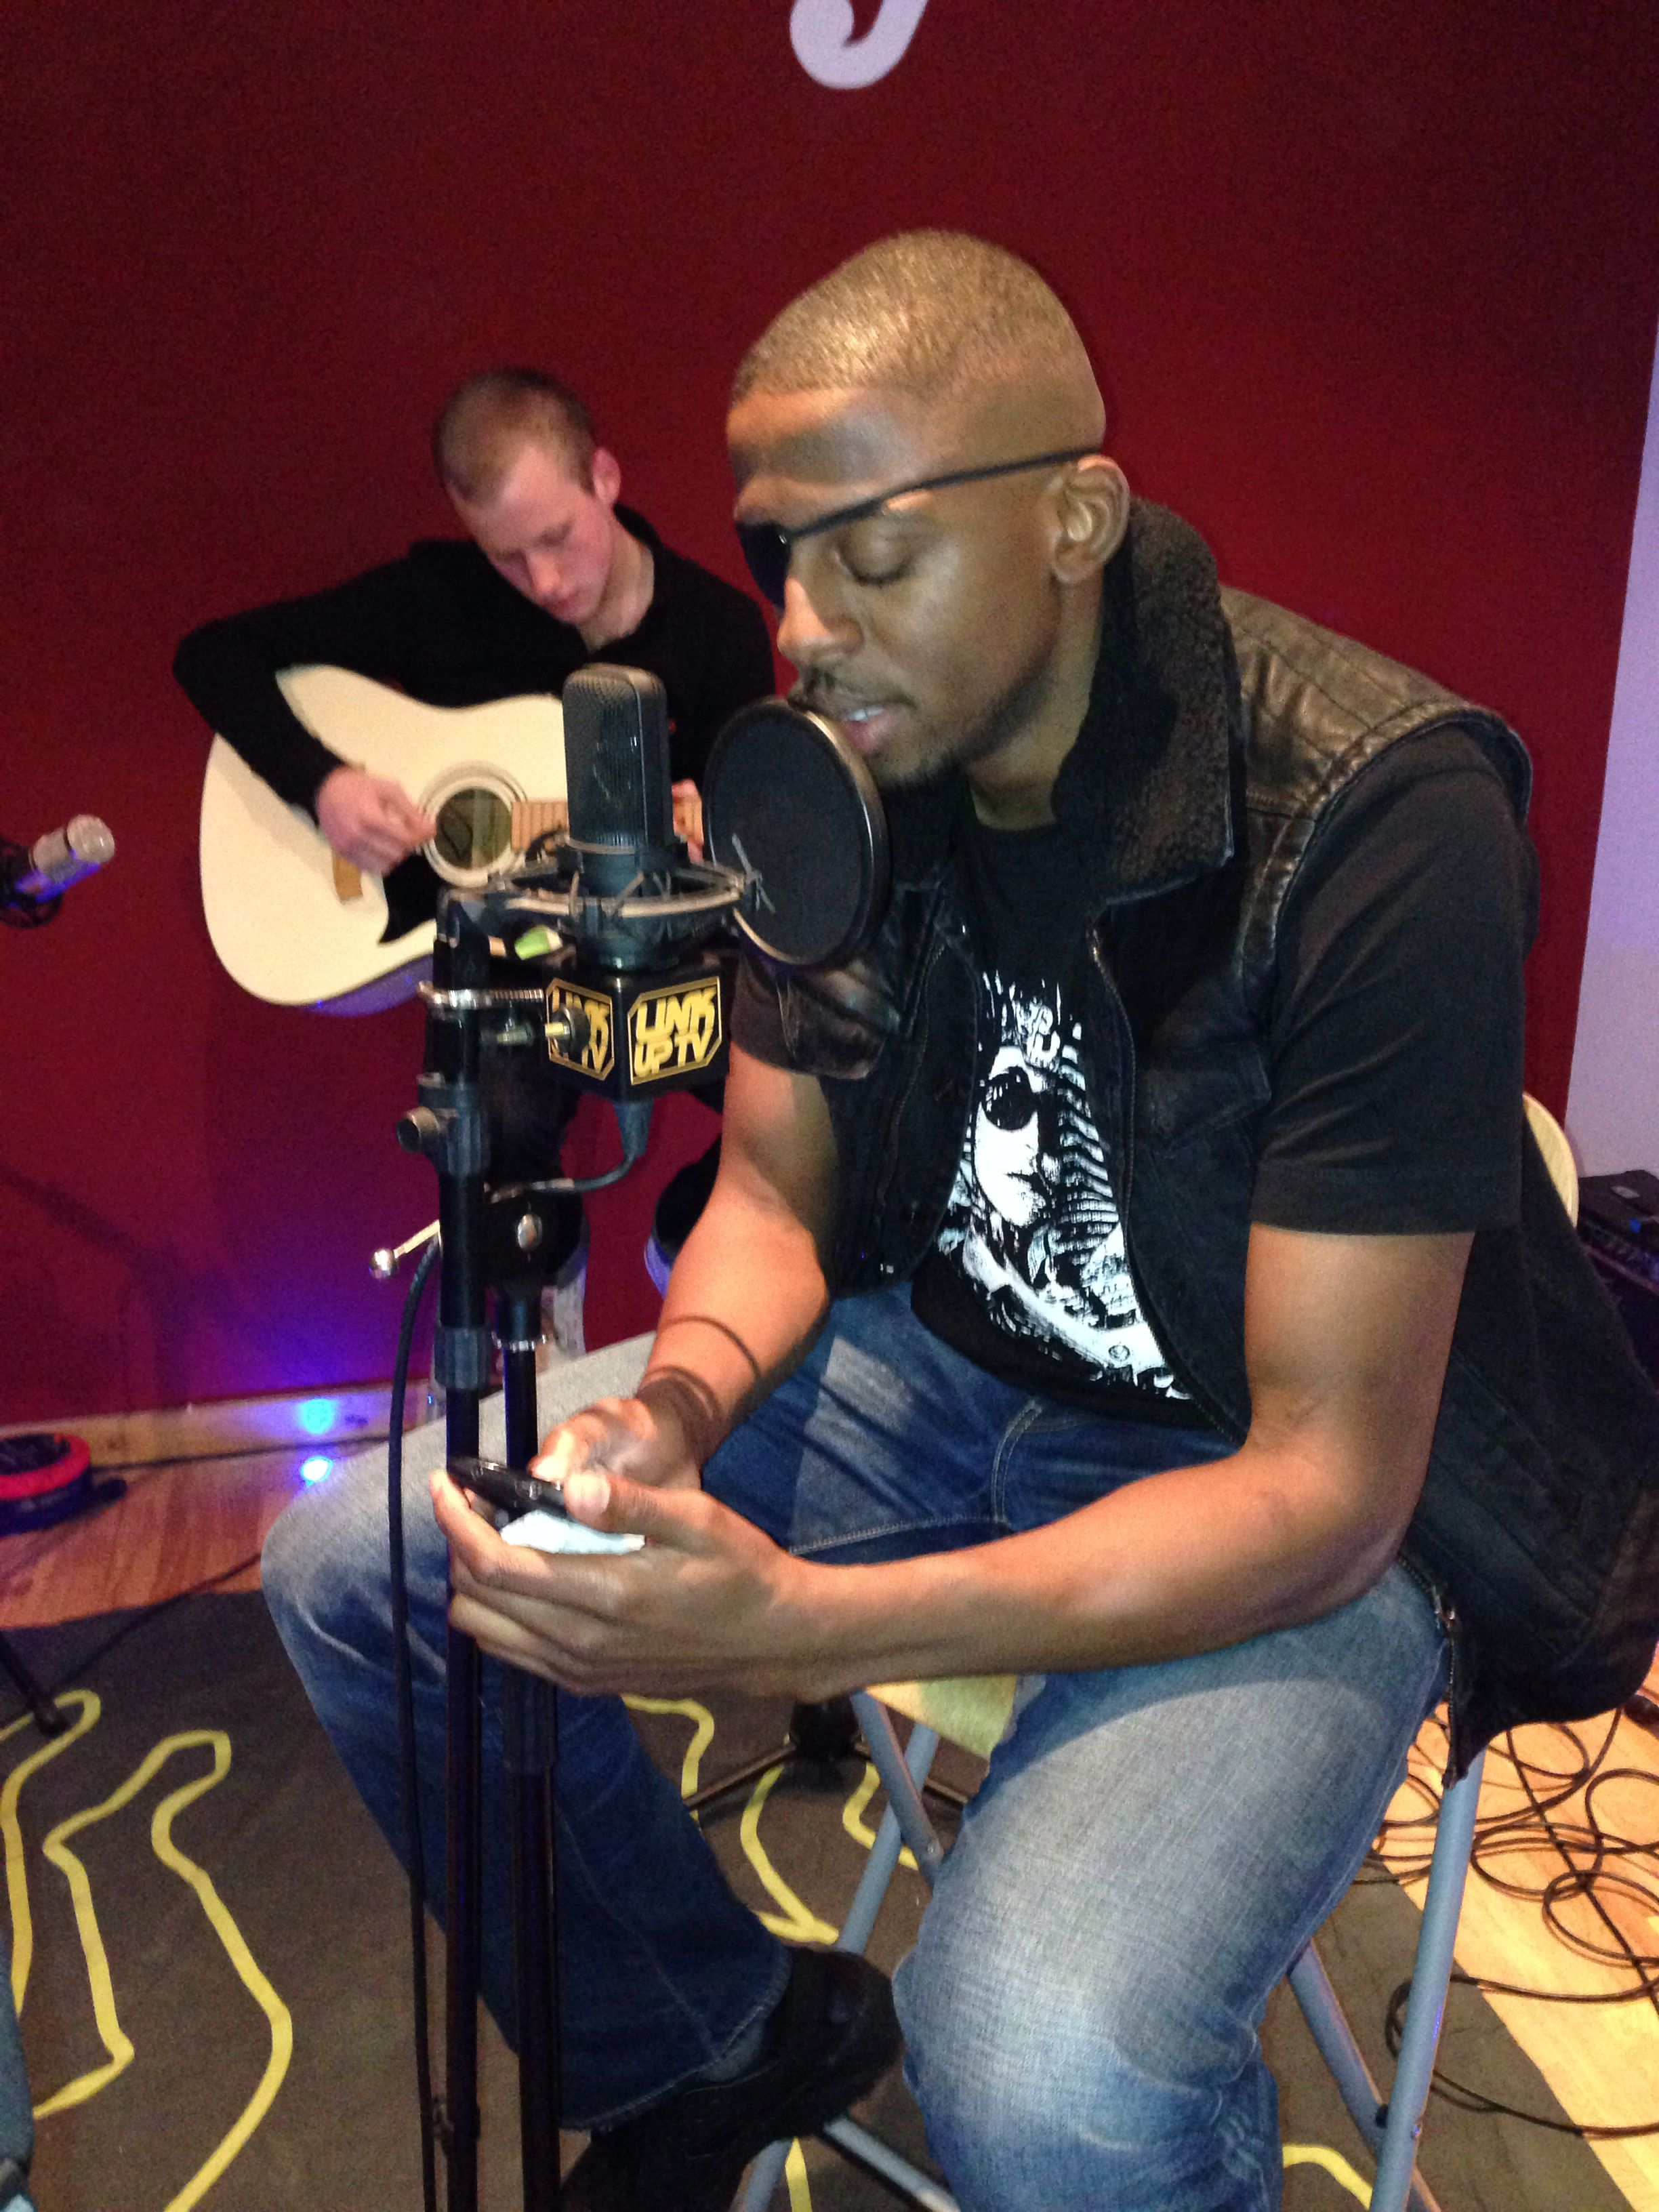 YMB breaking it down acoustically for LinkUpTV #BigHomie #Mv3